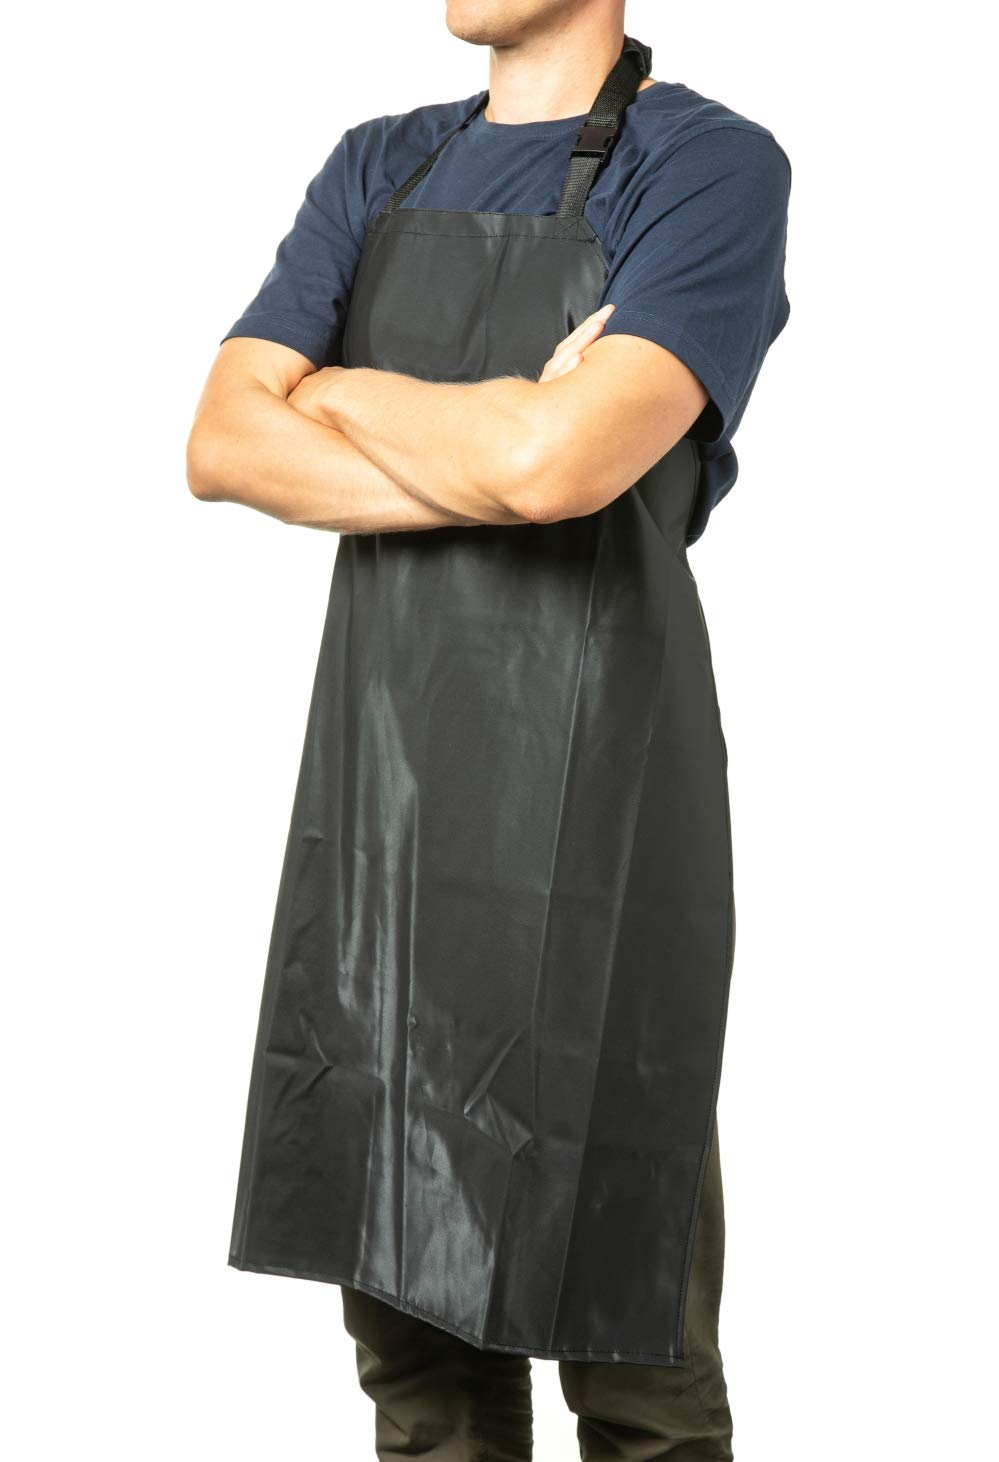 Waterproof Rubber Vinyl Apron - 35'' Upgraded 2018 Light Model - Best for Staying Dry When Dishwashing, Lab Work, Butcher, Dog Grooming, Cleaning Fish, Projects - Industrial Chemical Resistant Plastic